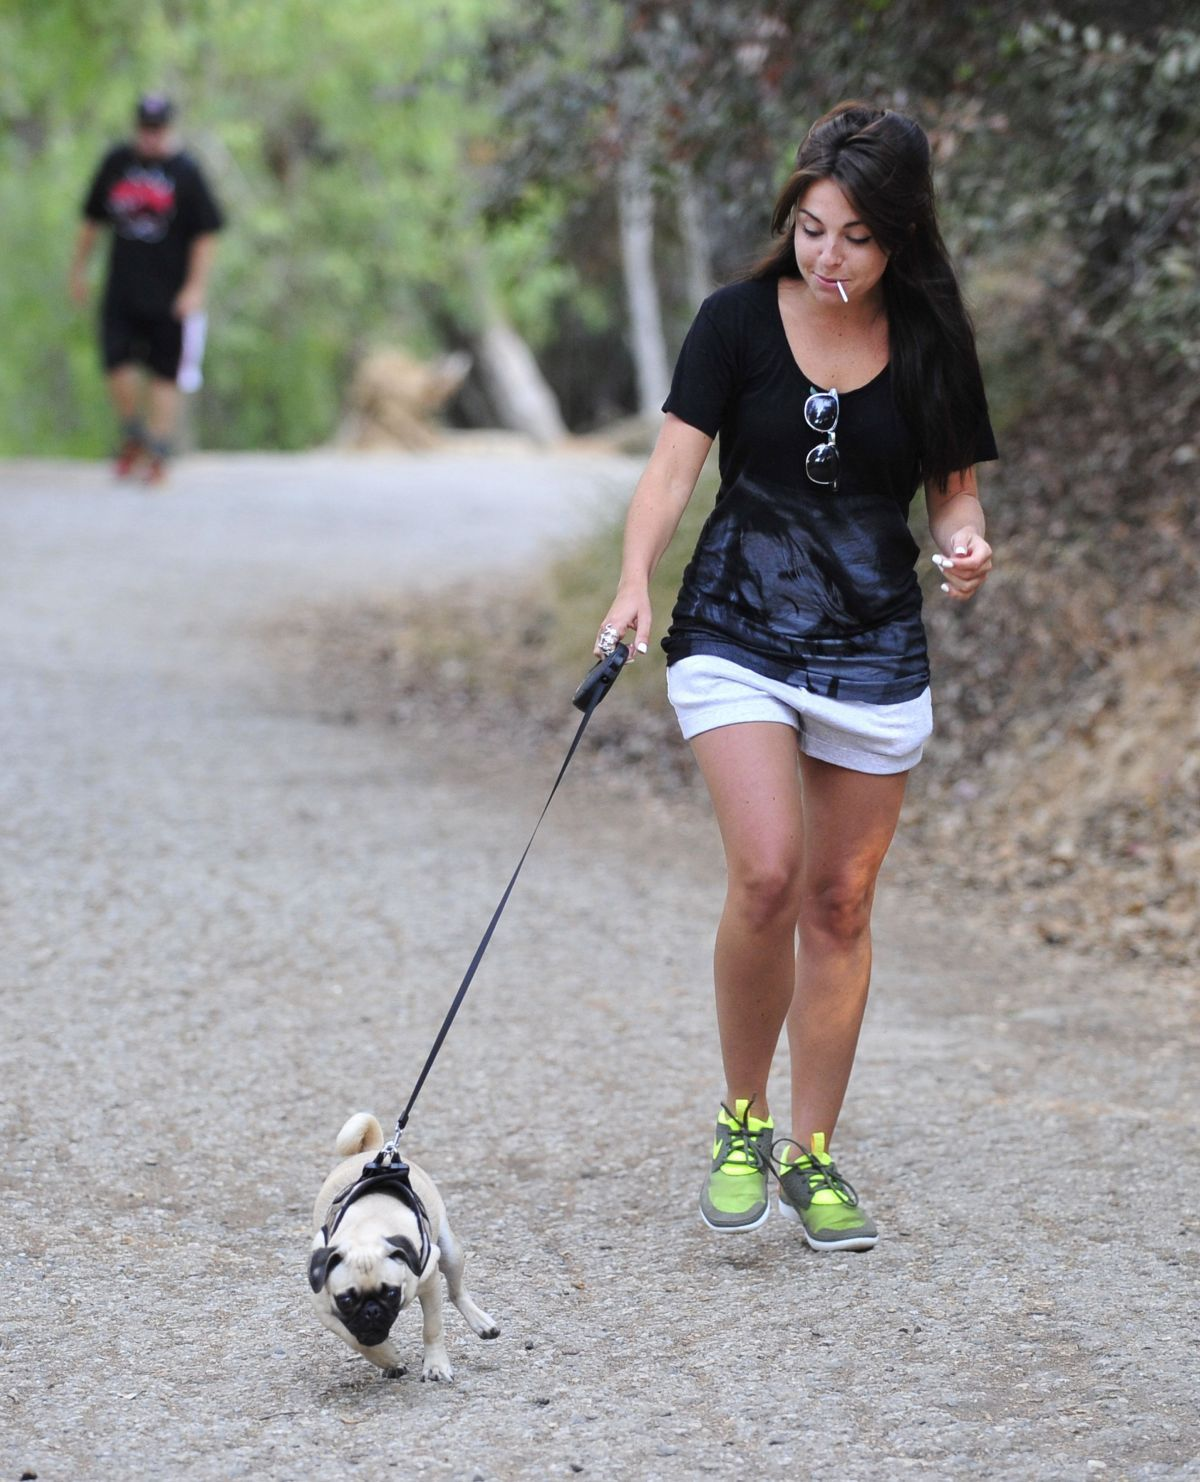 out walking a dog - Google Search